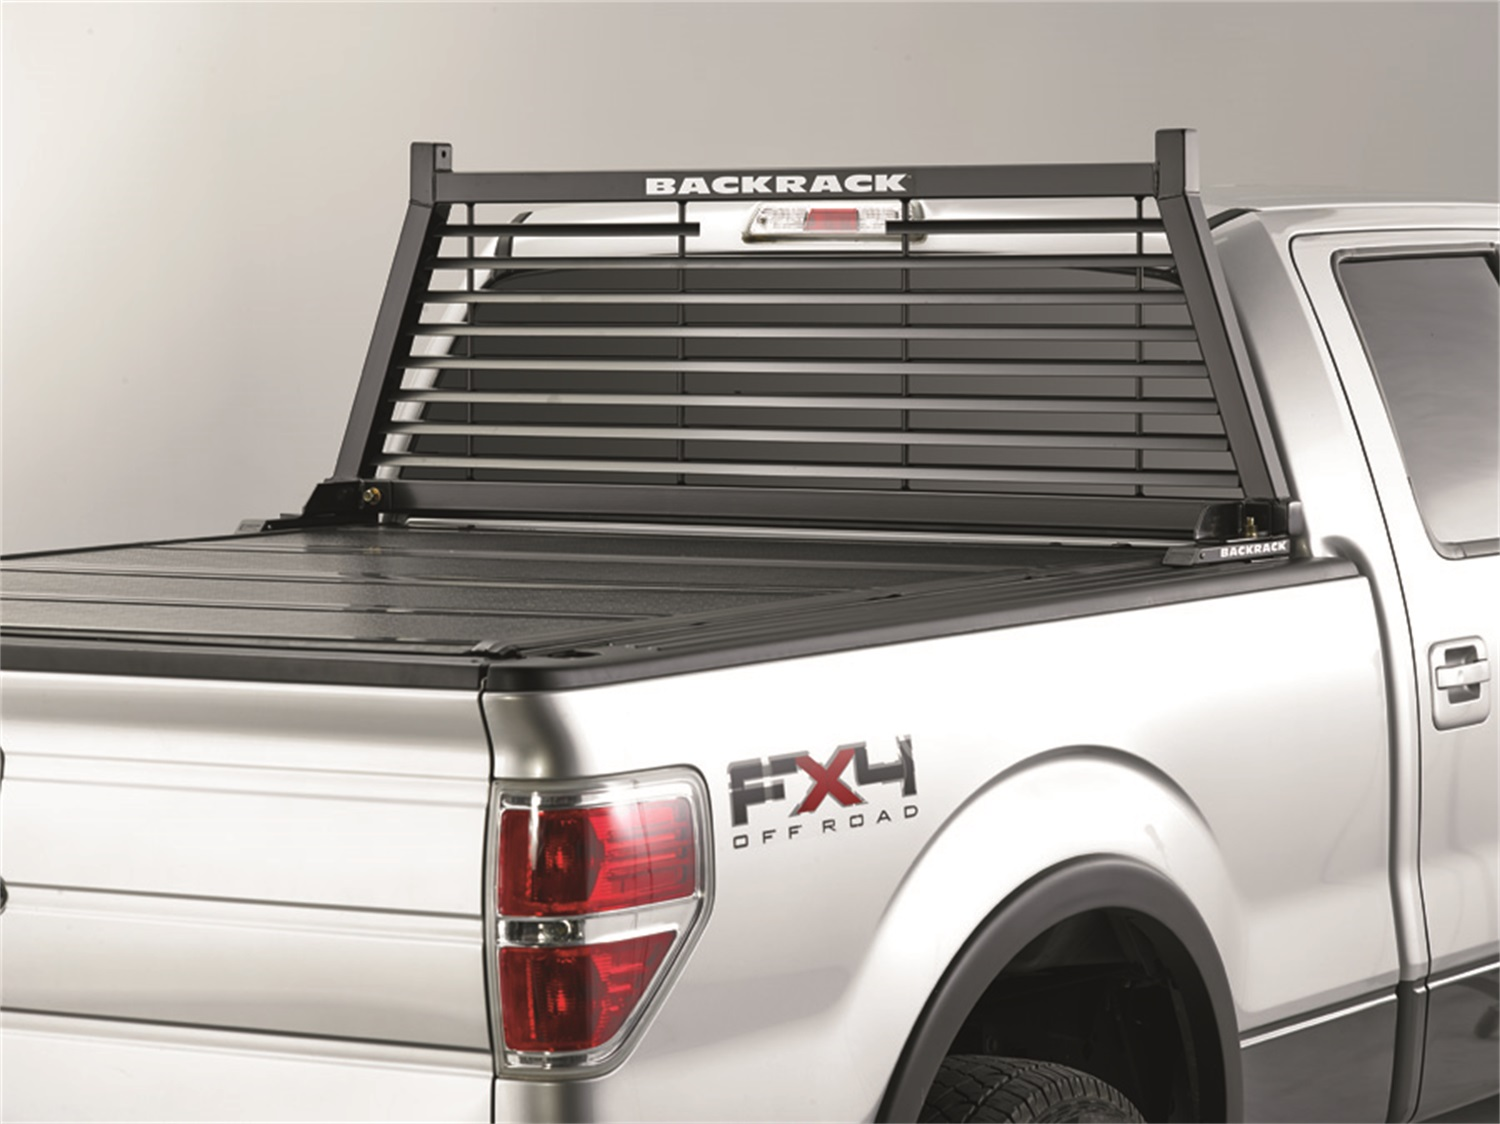 backrack 12700 louvered headache rack frame requires installation kit sold separately for use w pn 30201 30221 walmart com